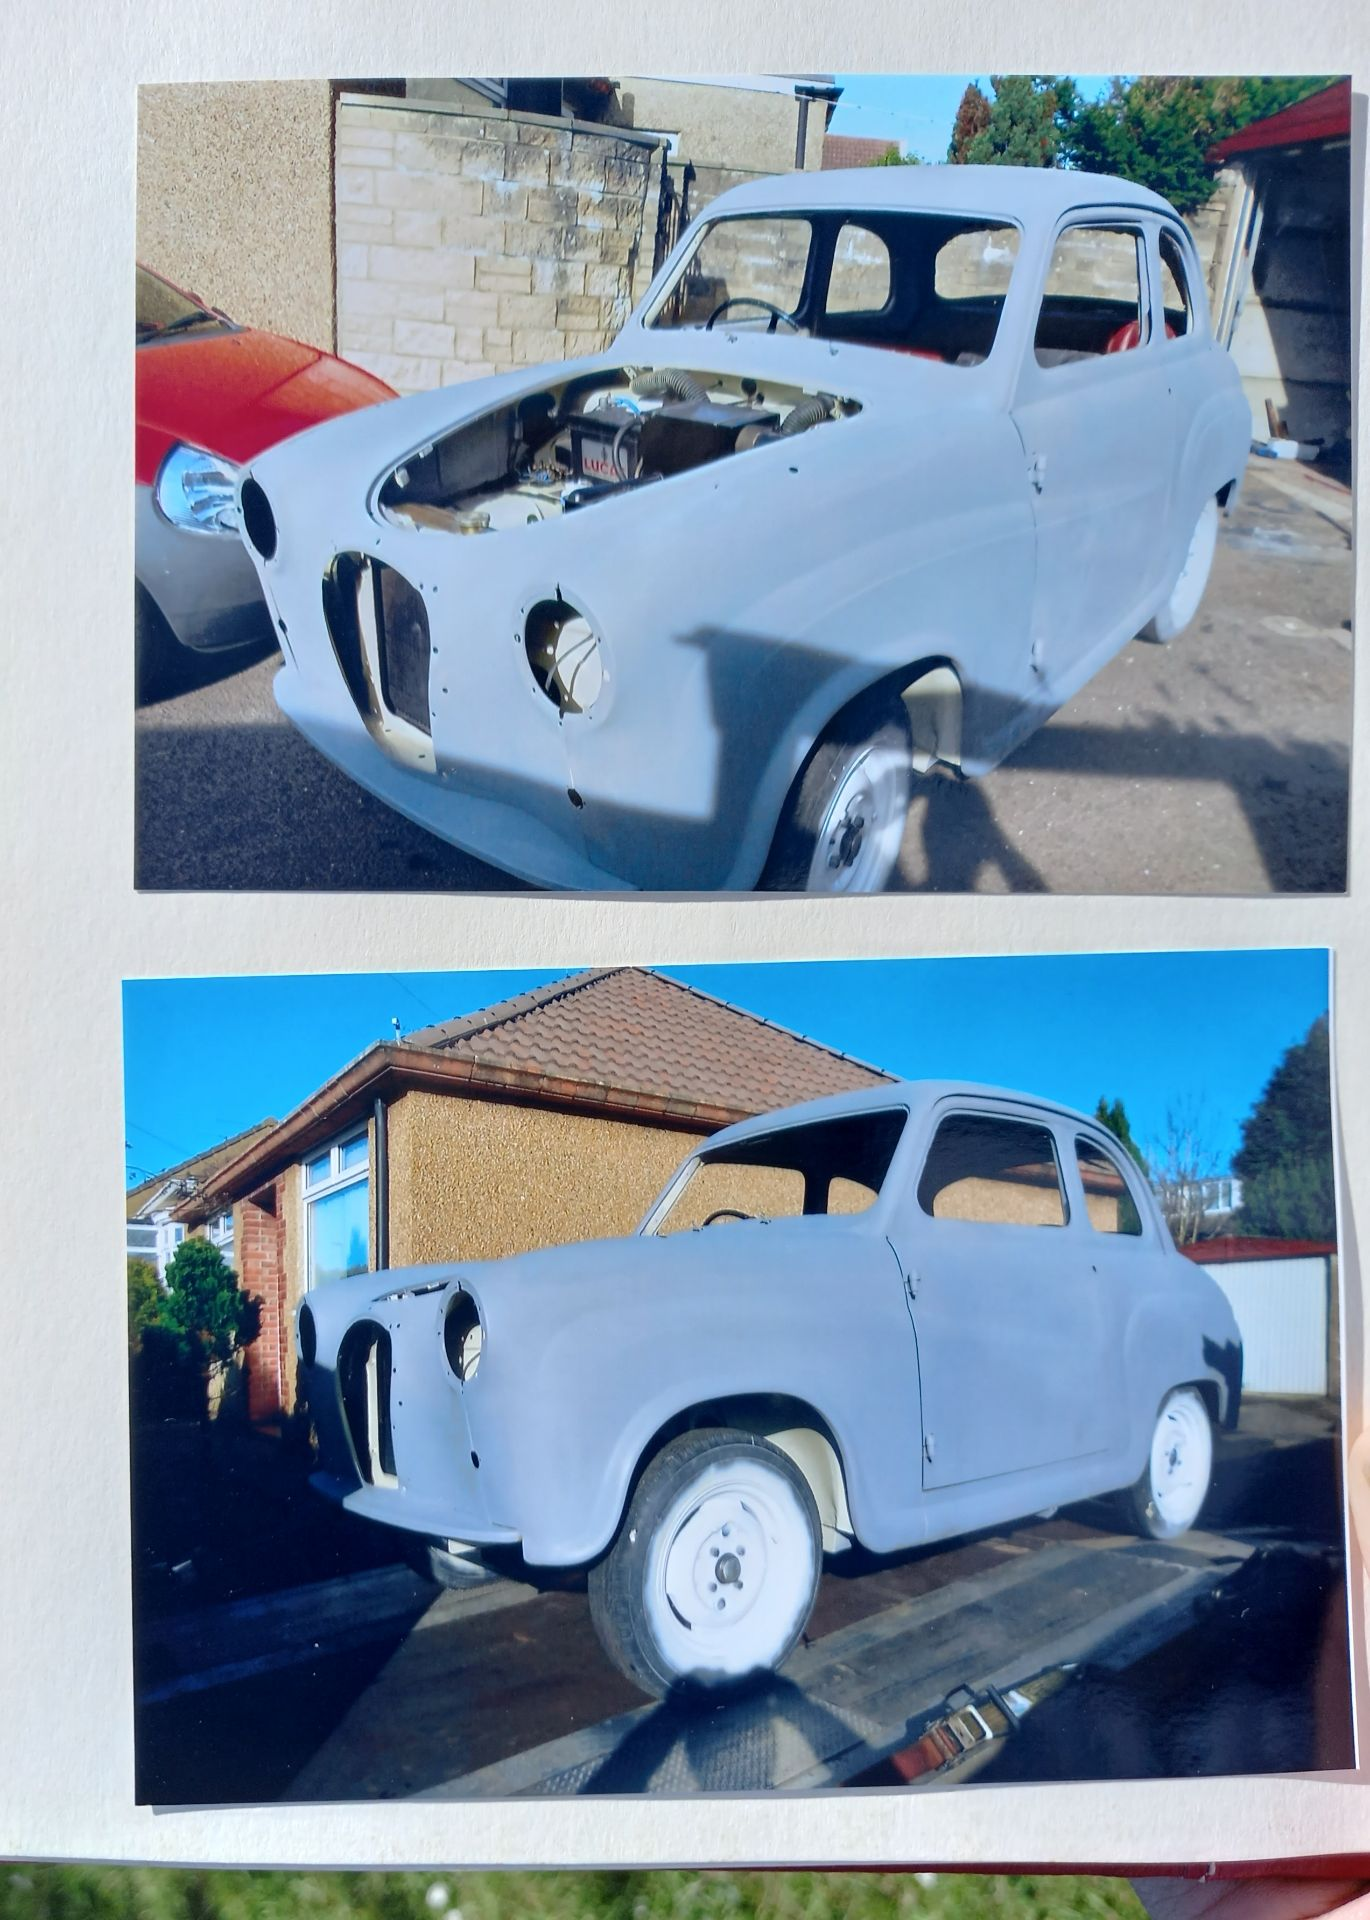 VNP 158 - 1958 AUSTIN A35 SALOON - 948CC - FULLY RESTORED CLASSIC CAR - Image 23 of 24